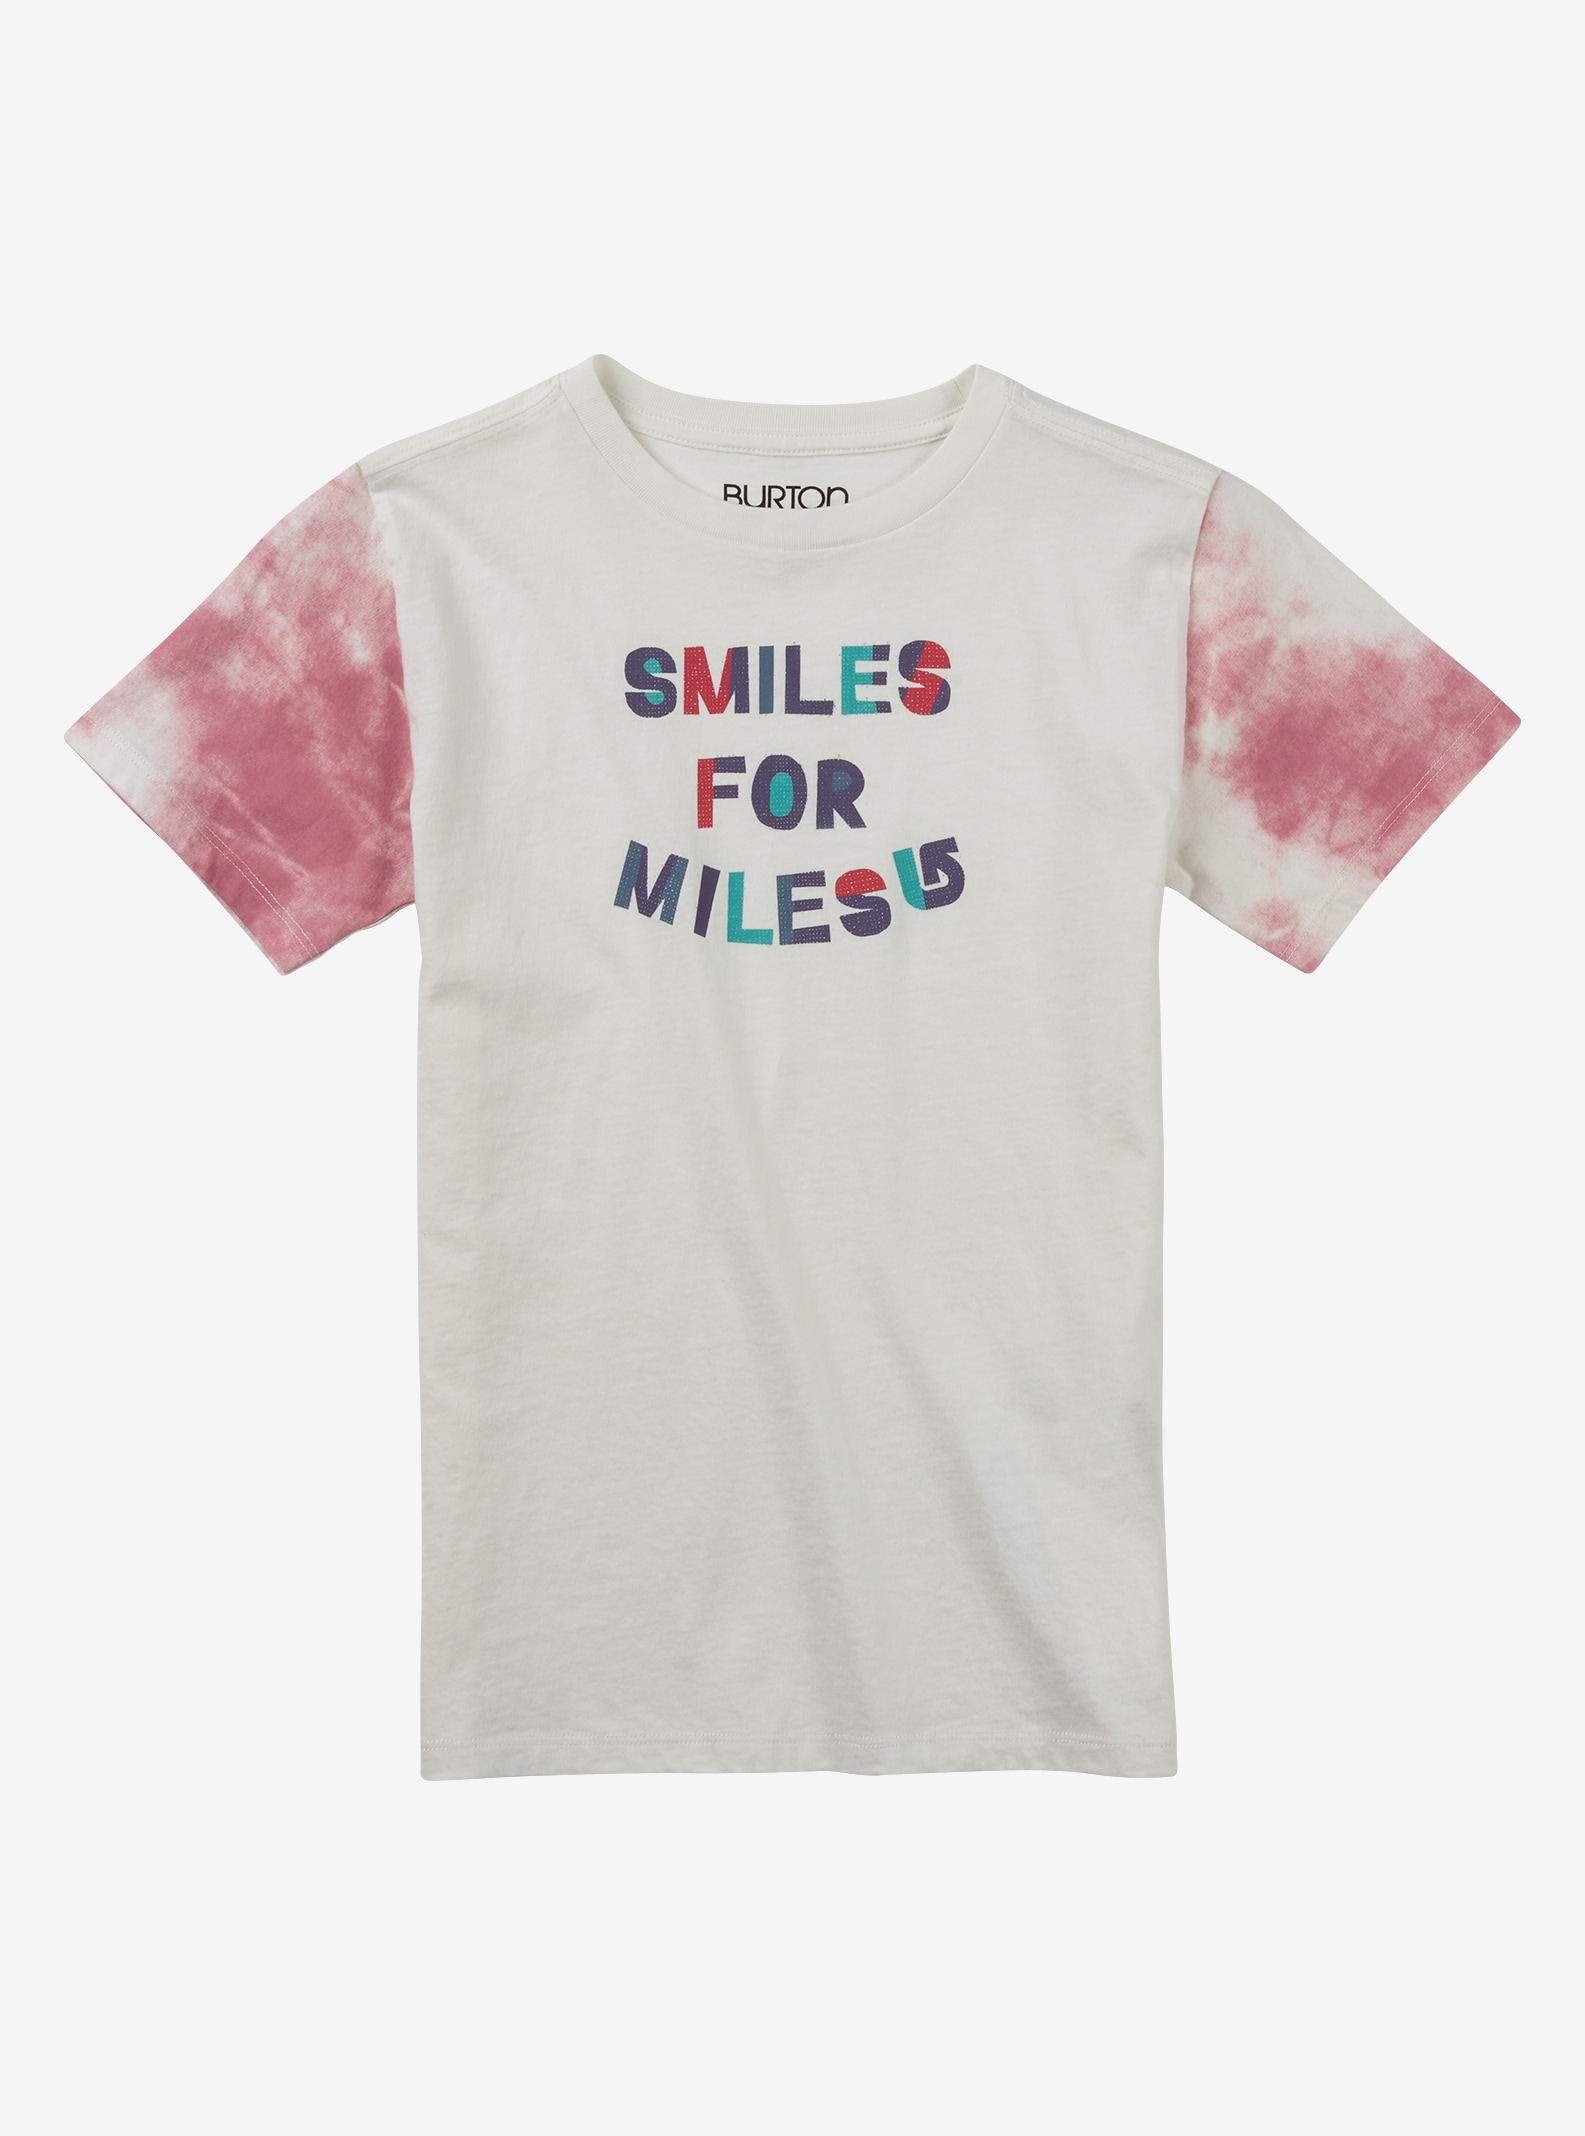 Burton Girls' Smiles Short Sleeve T Shirt shown in Stout White